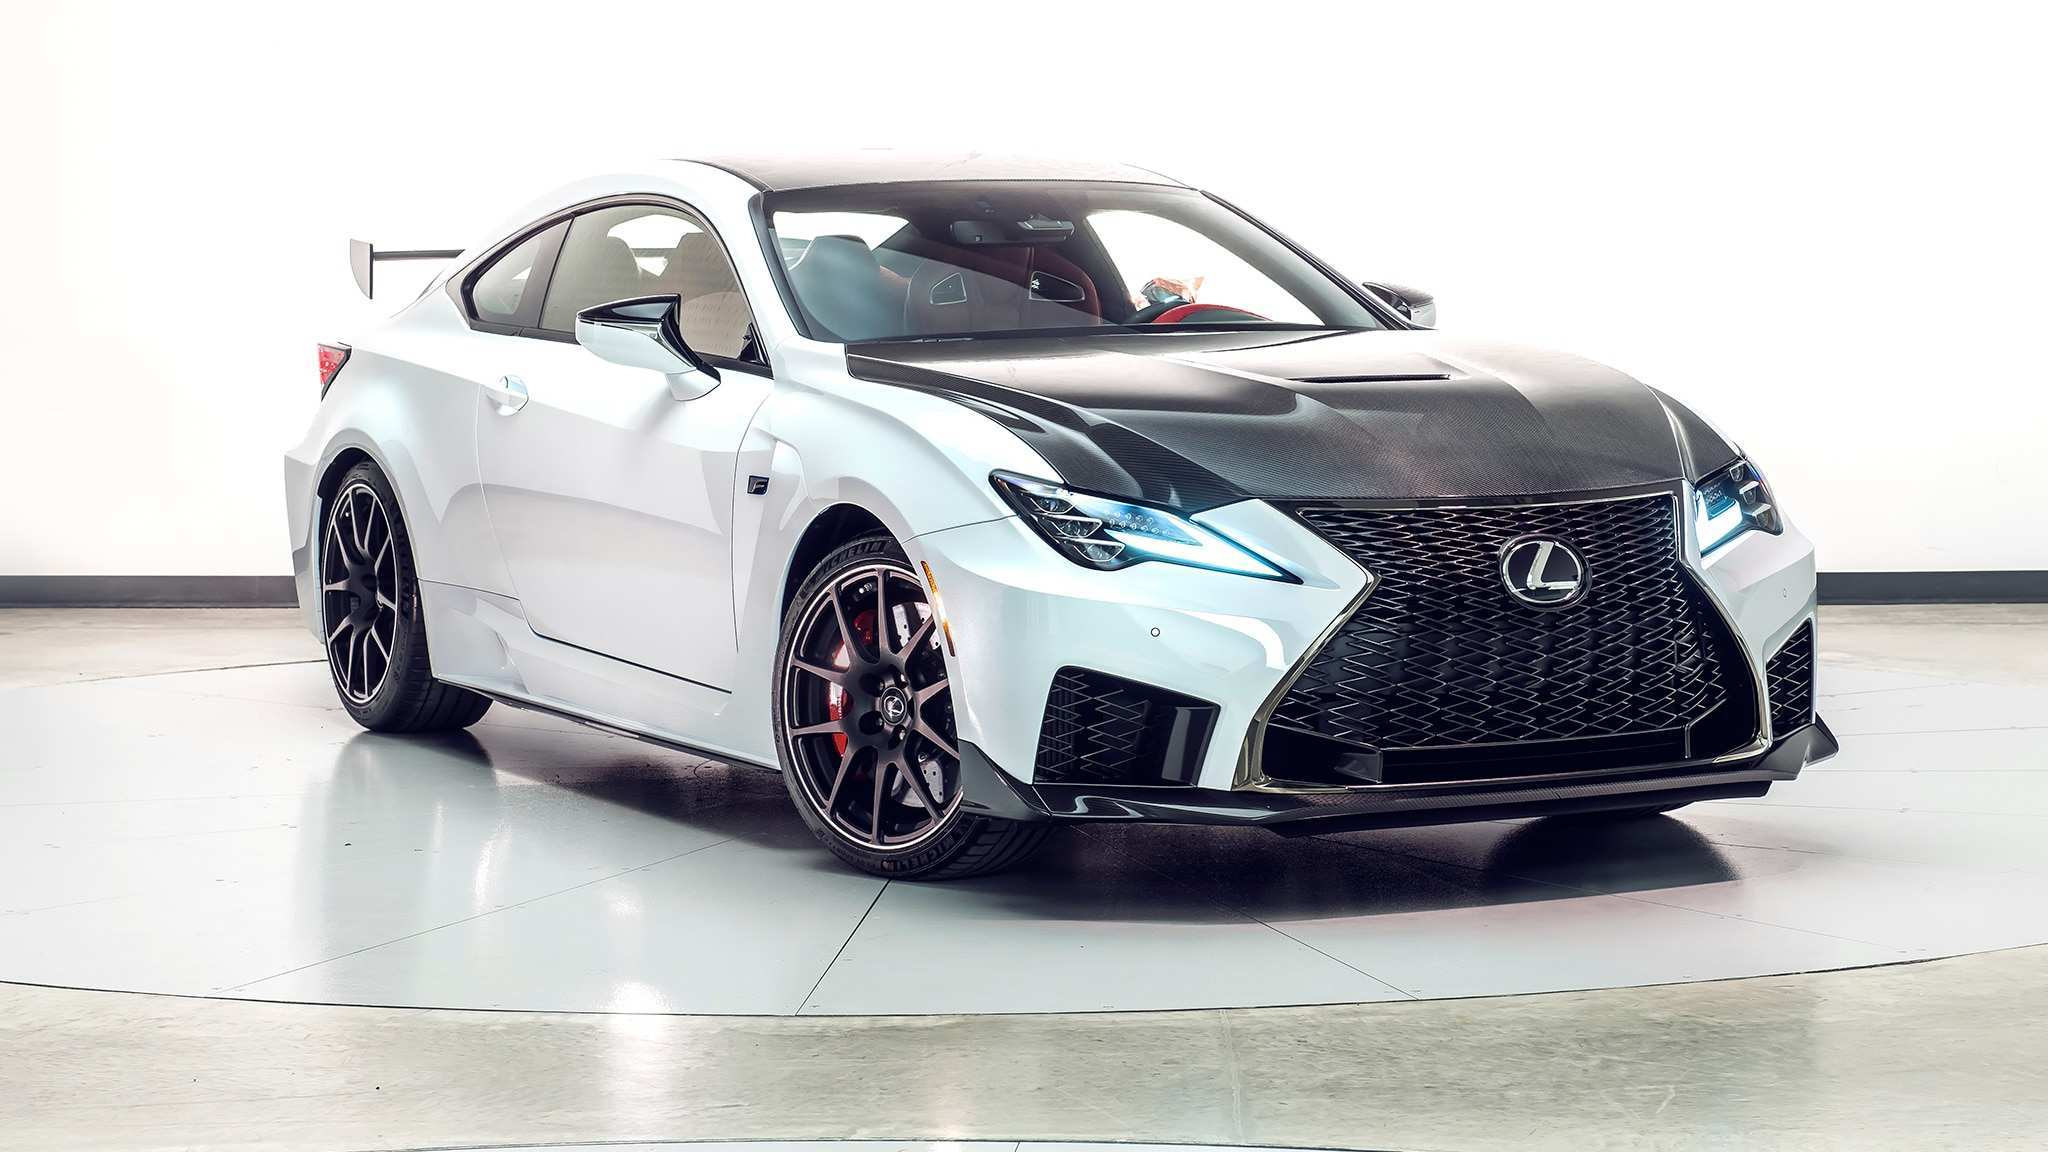 67 New Best Rx300 Lexus 2019 Release Date Reviews with Best Rx300 Lexus 2019 Release Date